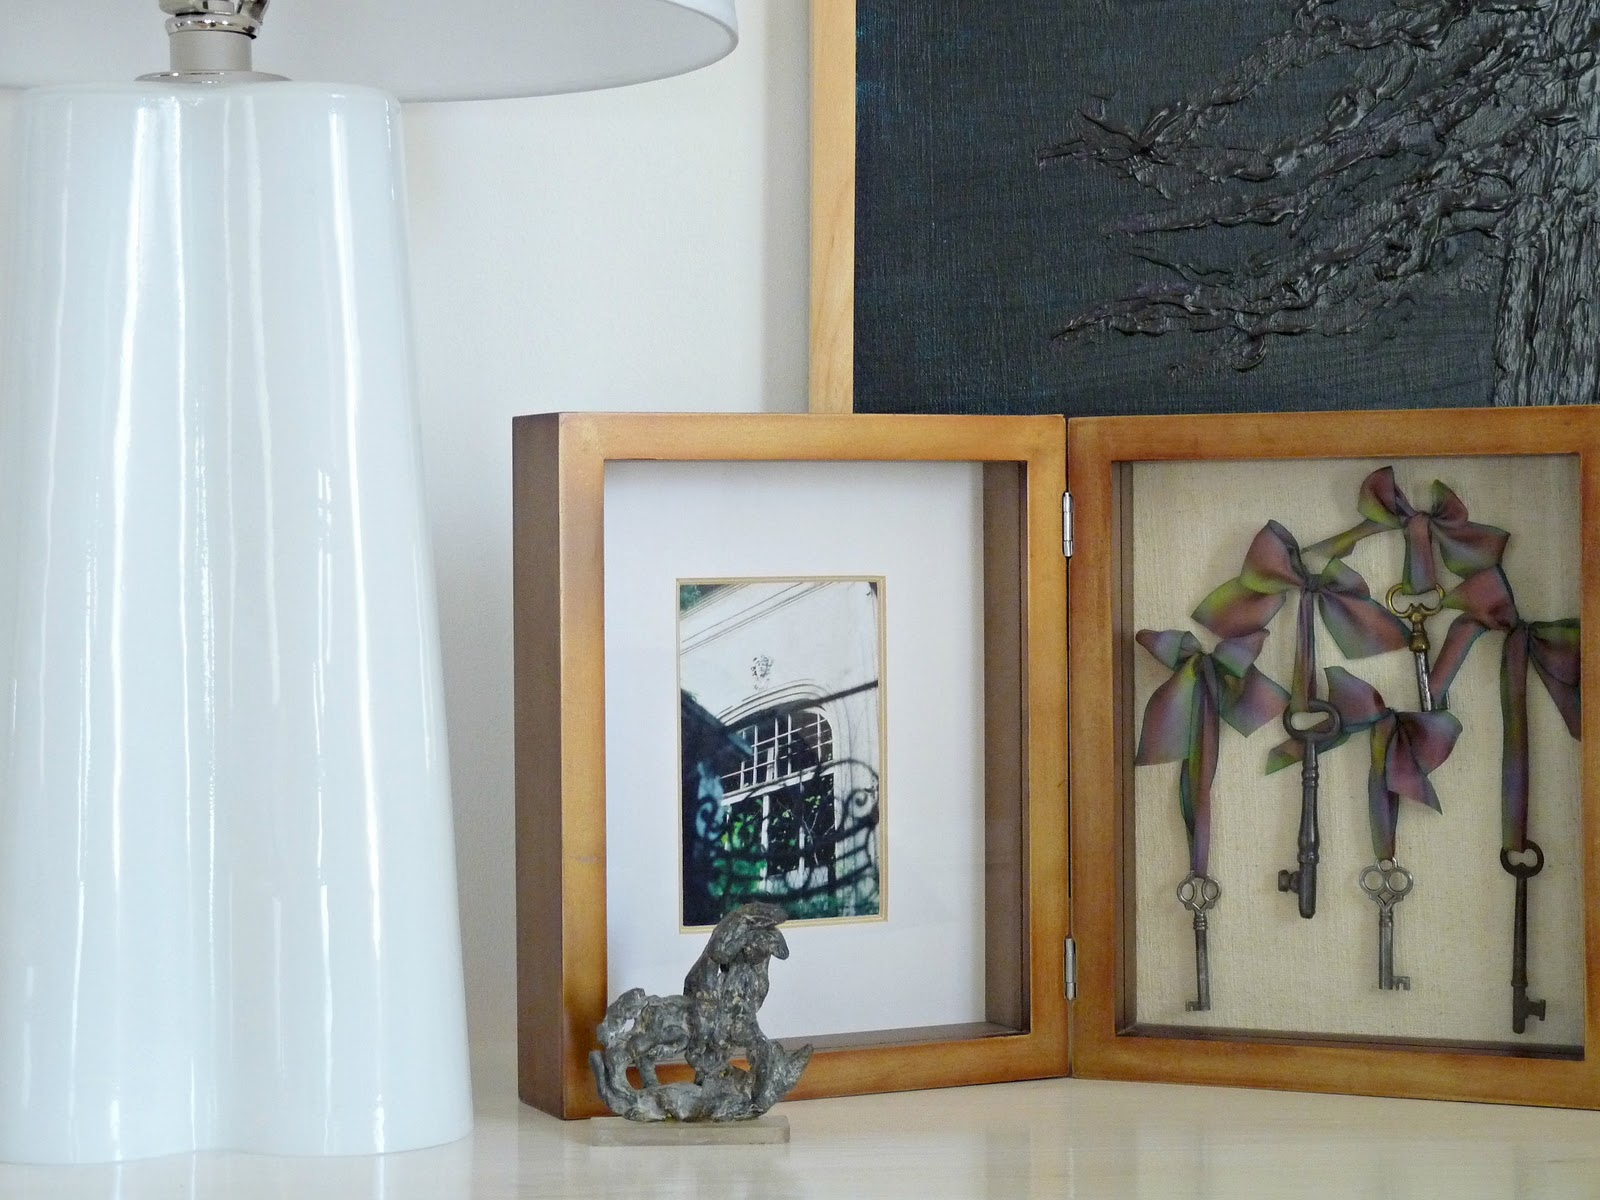 DIY shadow box art ideas